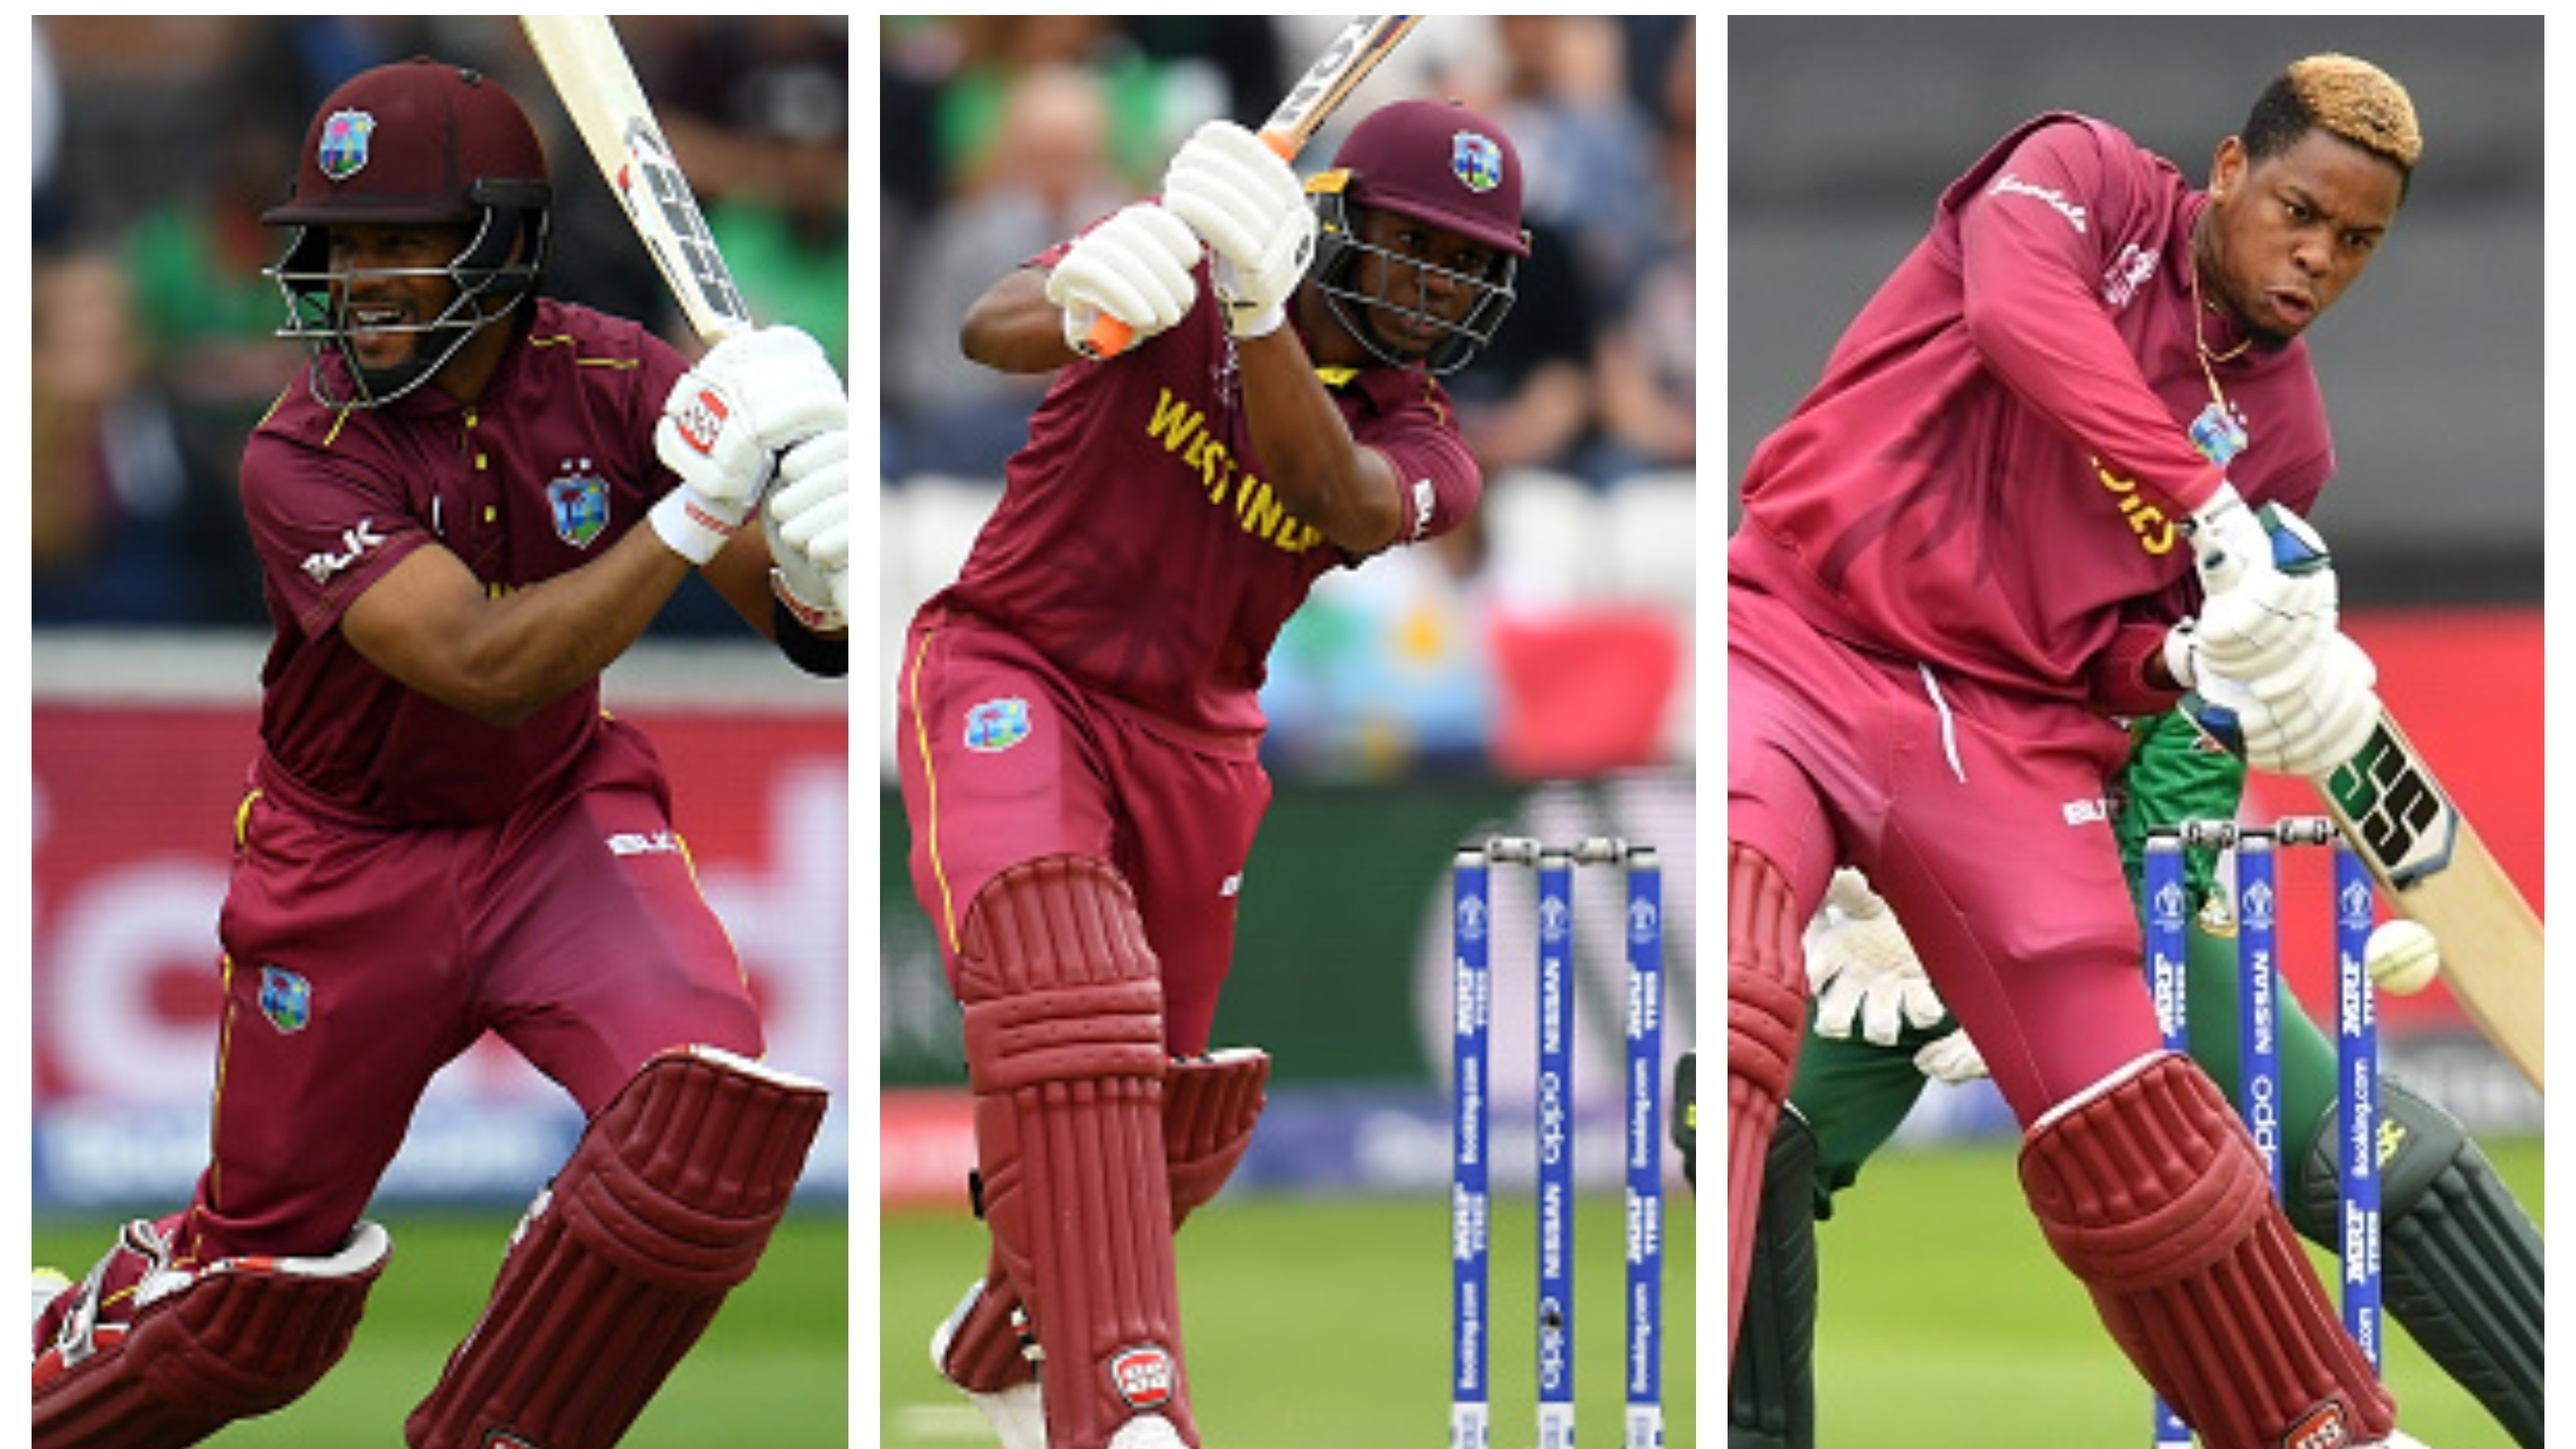 CWC 2019: WI v BAN – Half centuries from Hope, Lewis and Hetmyer help West Indies to post 321